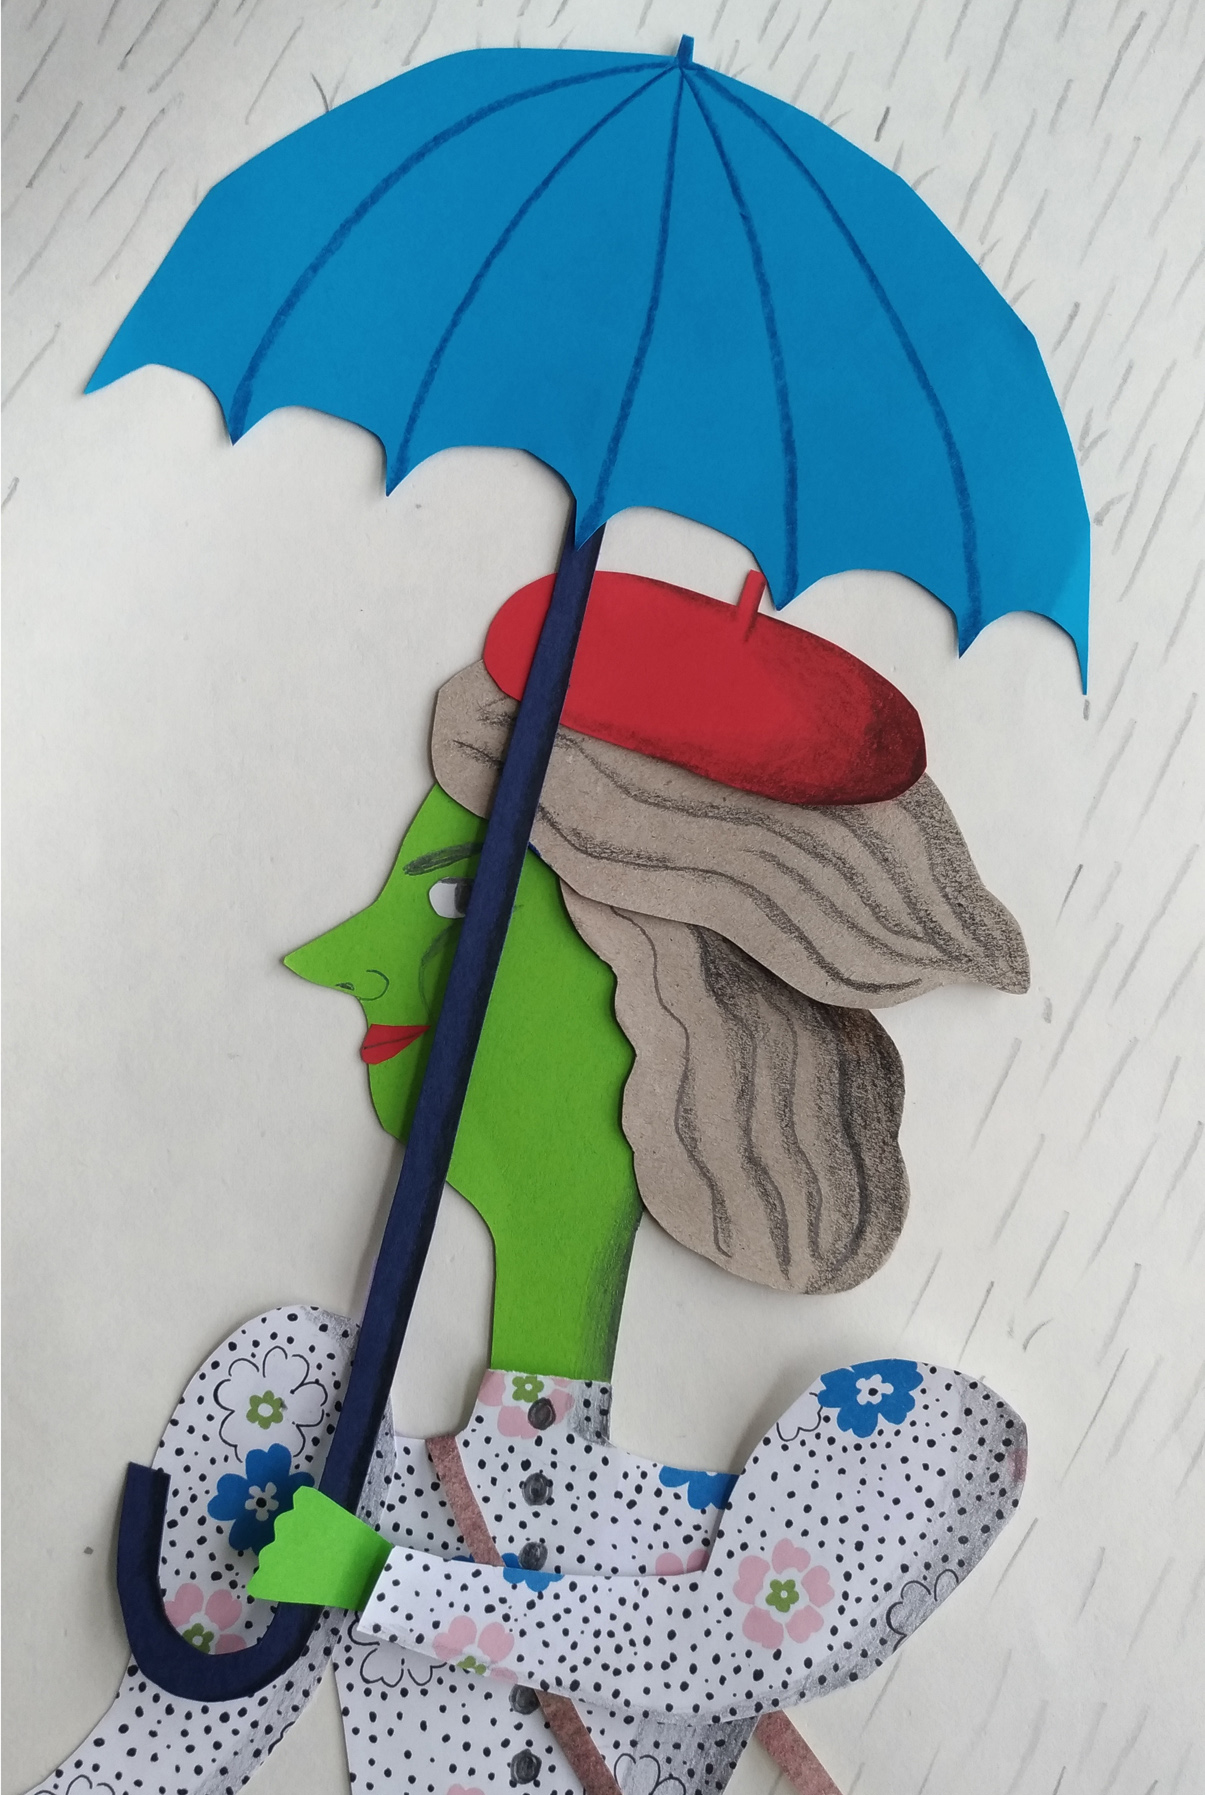 Rainy day (close up) - collage in cut paper, pencil and ribbon. A personal work made as a teaching example